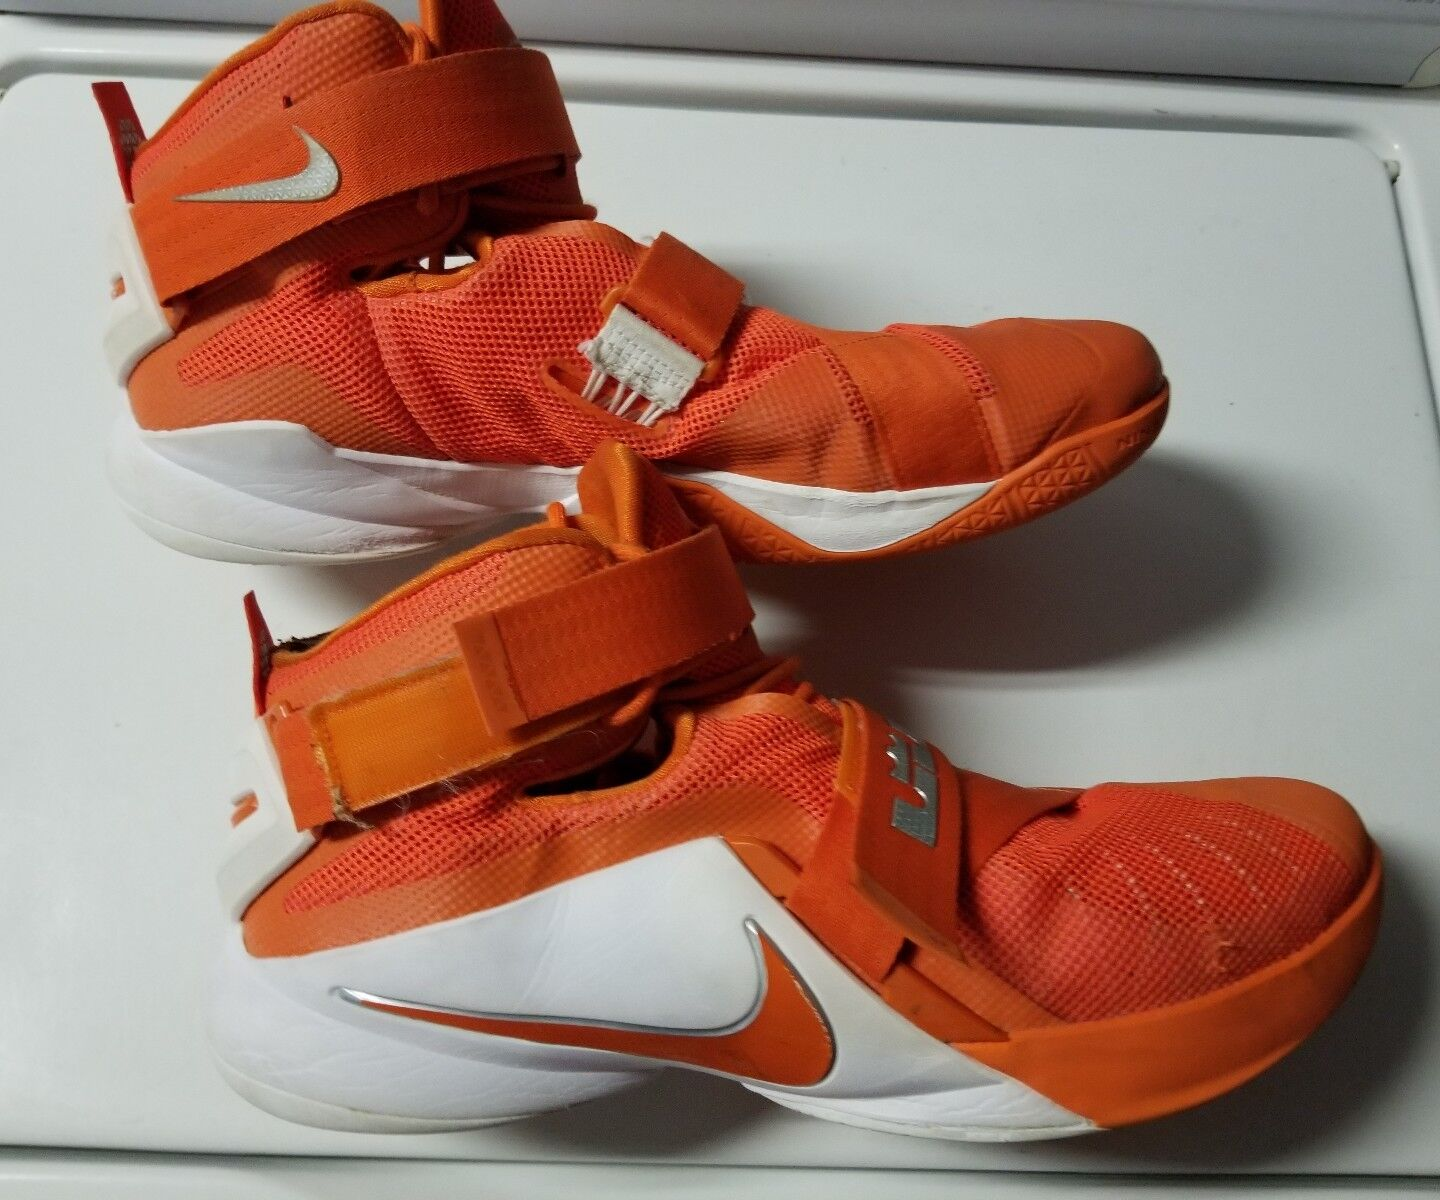 Lebron James Nike Zoom Mens Size 16 Orange & White